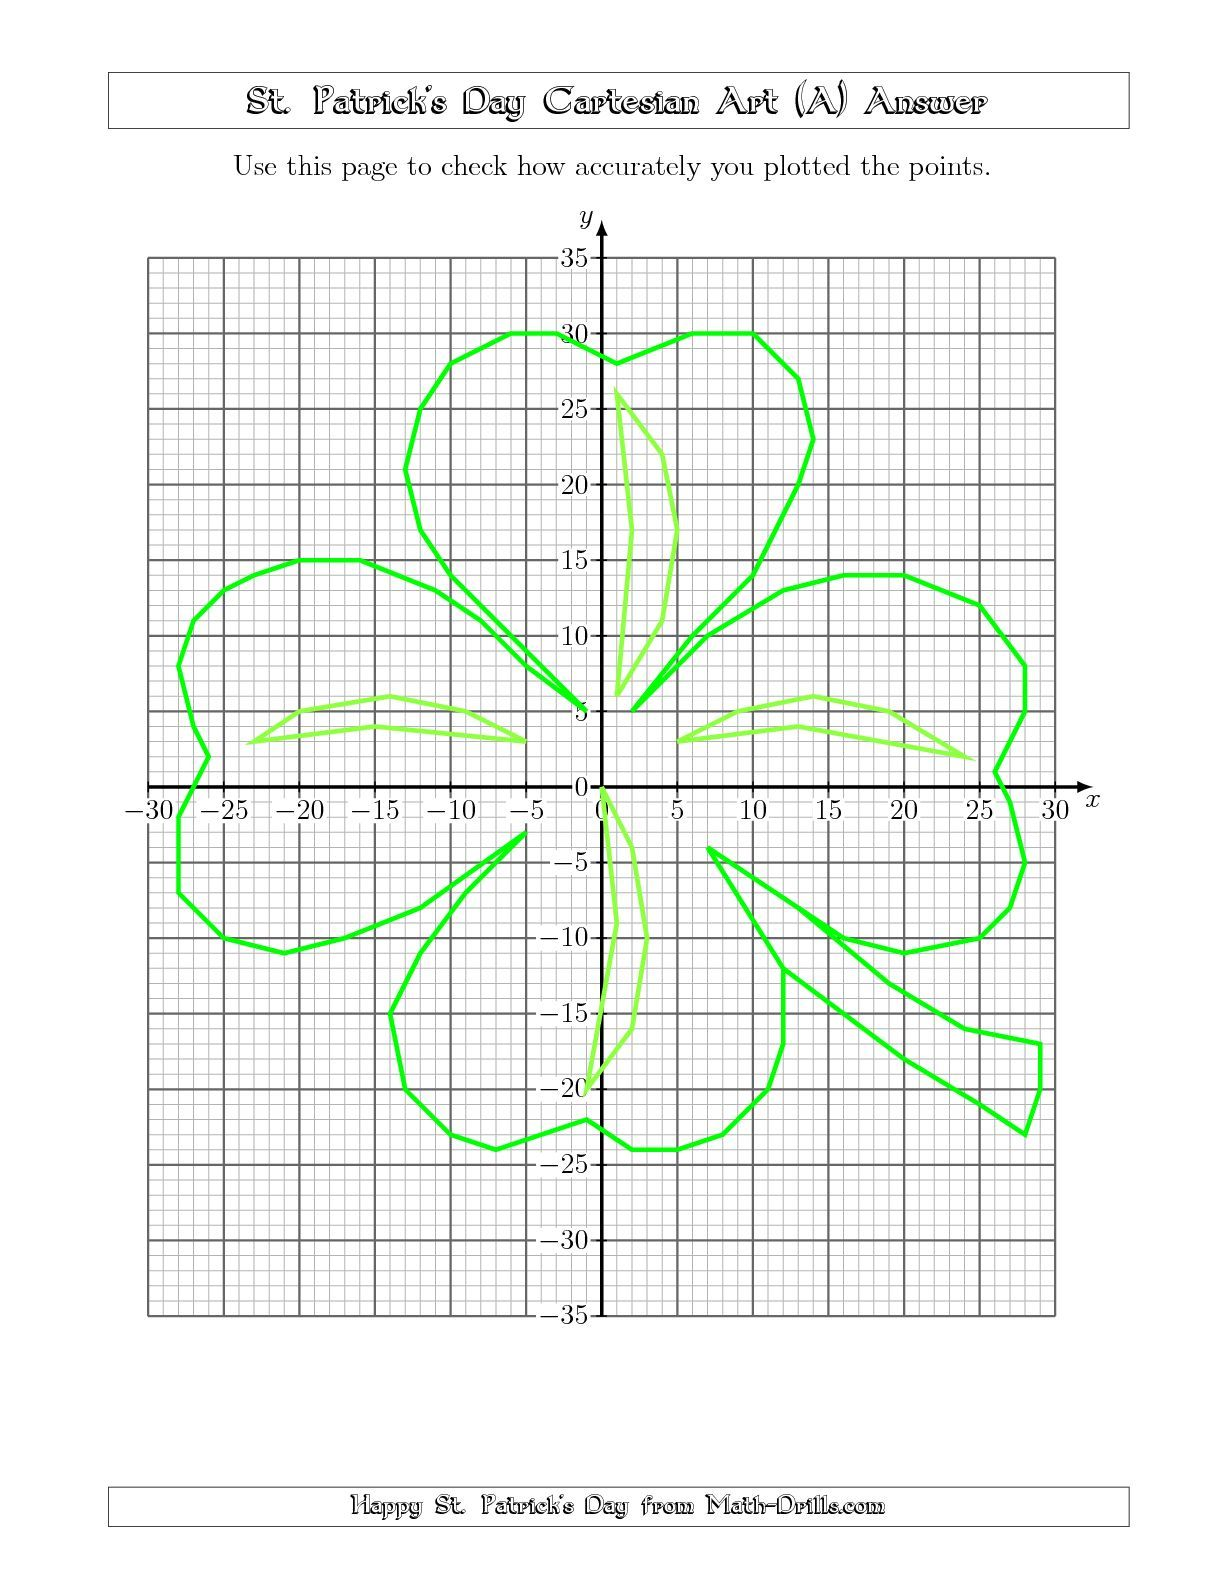 The St Patrick S Day Cartesian Art Shamrock Math